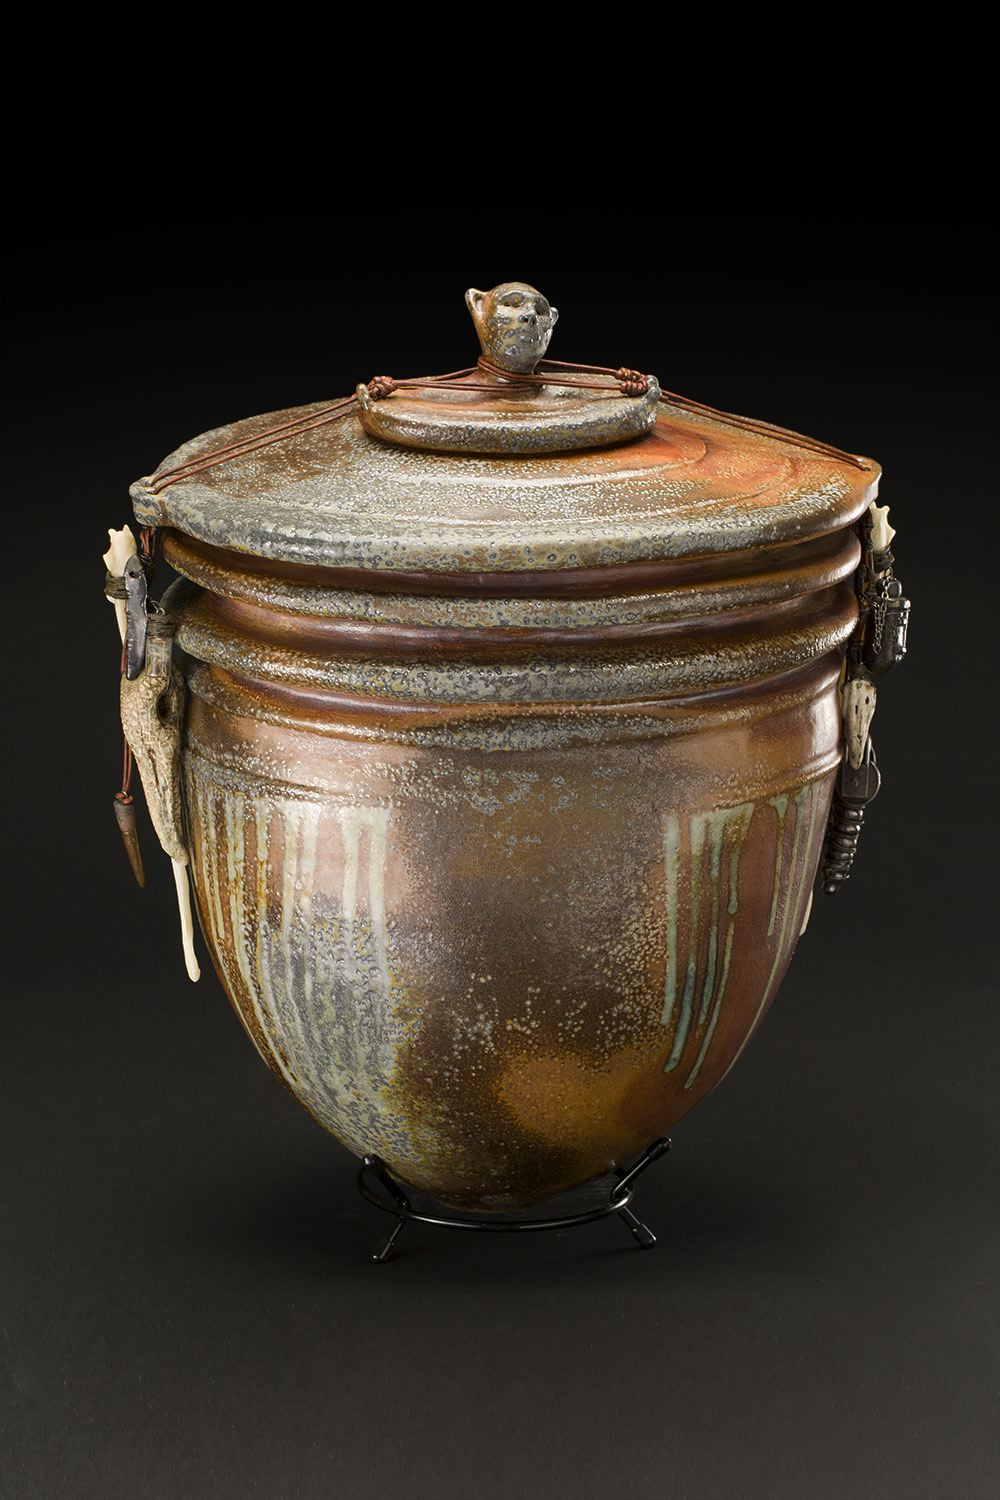 Melanie Ferguson Battles Left Behind, 2016 Hand built lidded vessel; stoneware, flashing slip, glaze, oxide stains, gas fired in soda, bone, glass, dandelion seed, wire, silver, leather 17 x 13.5 x 10 inches 43.2 x 34.3 x 25.4 cm MFe 34